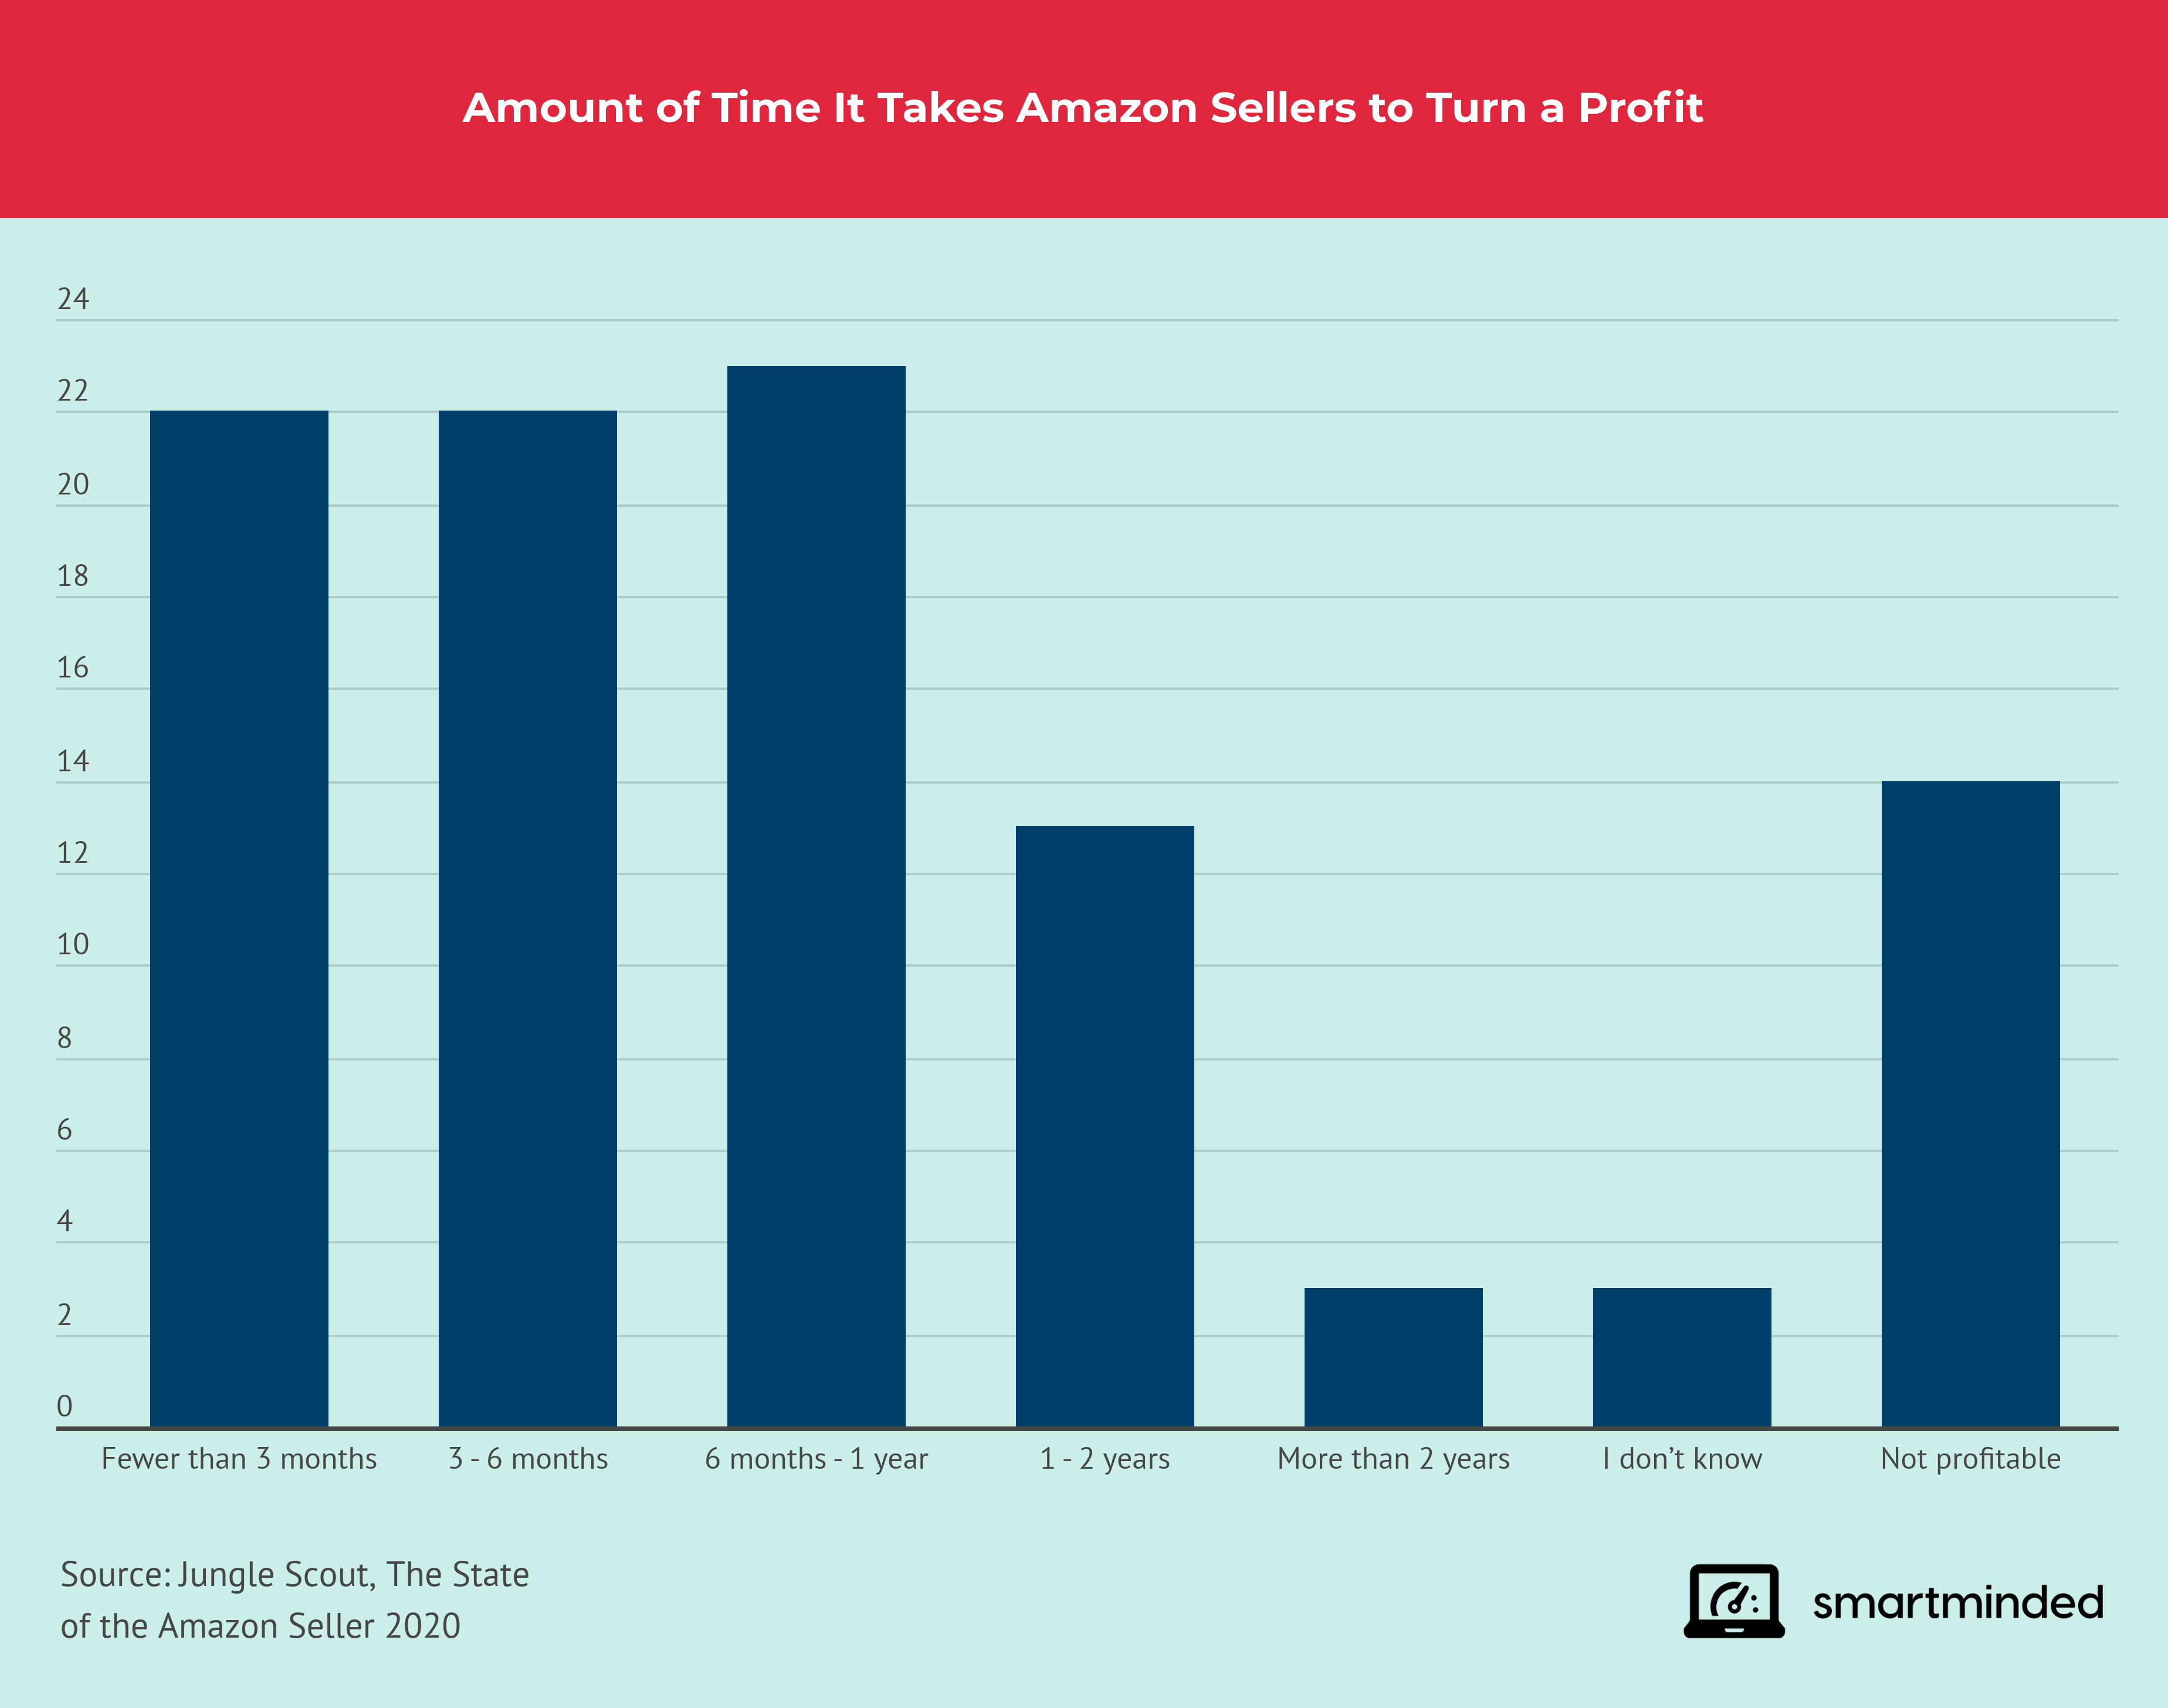 Average monthly sales of Amazon sellers